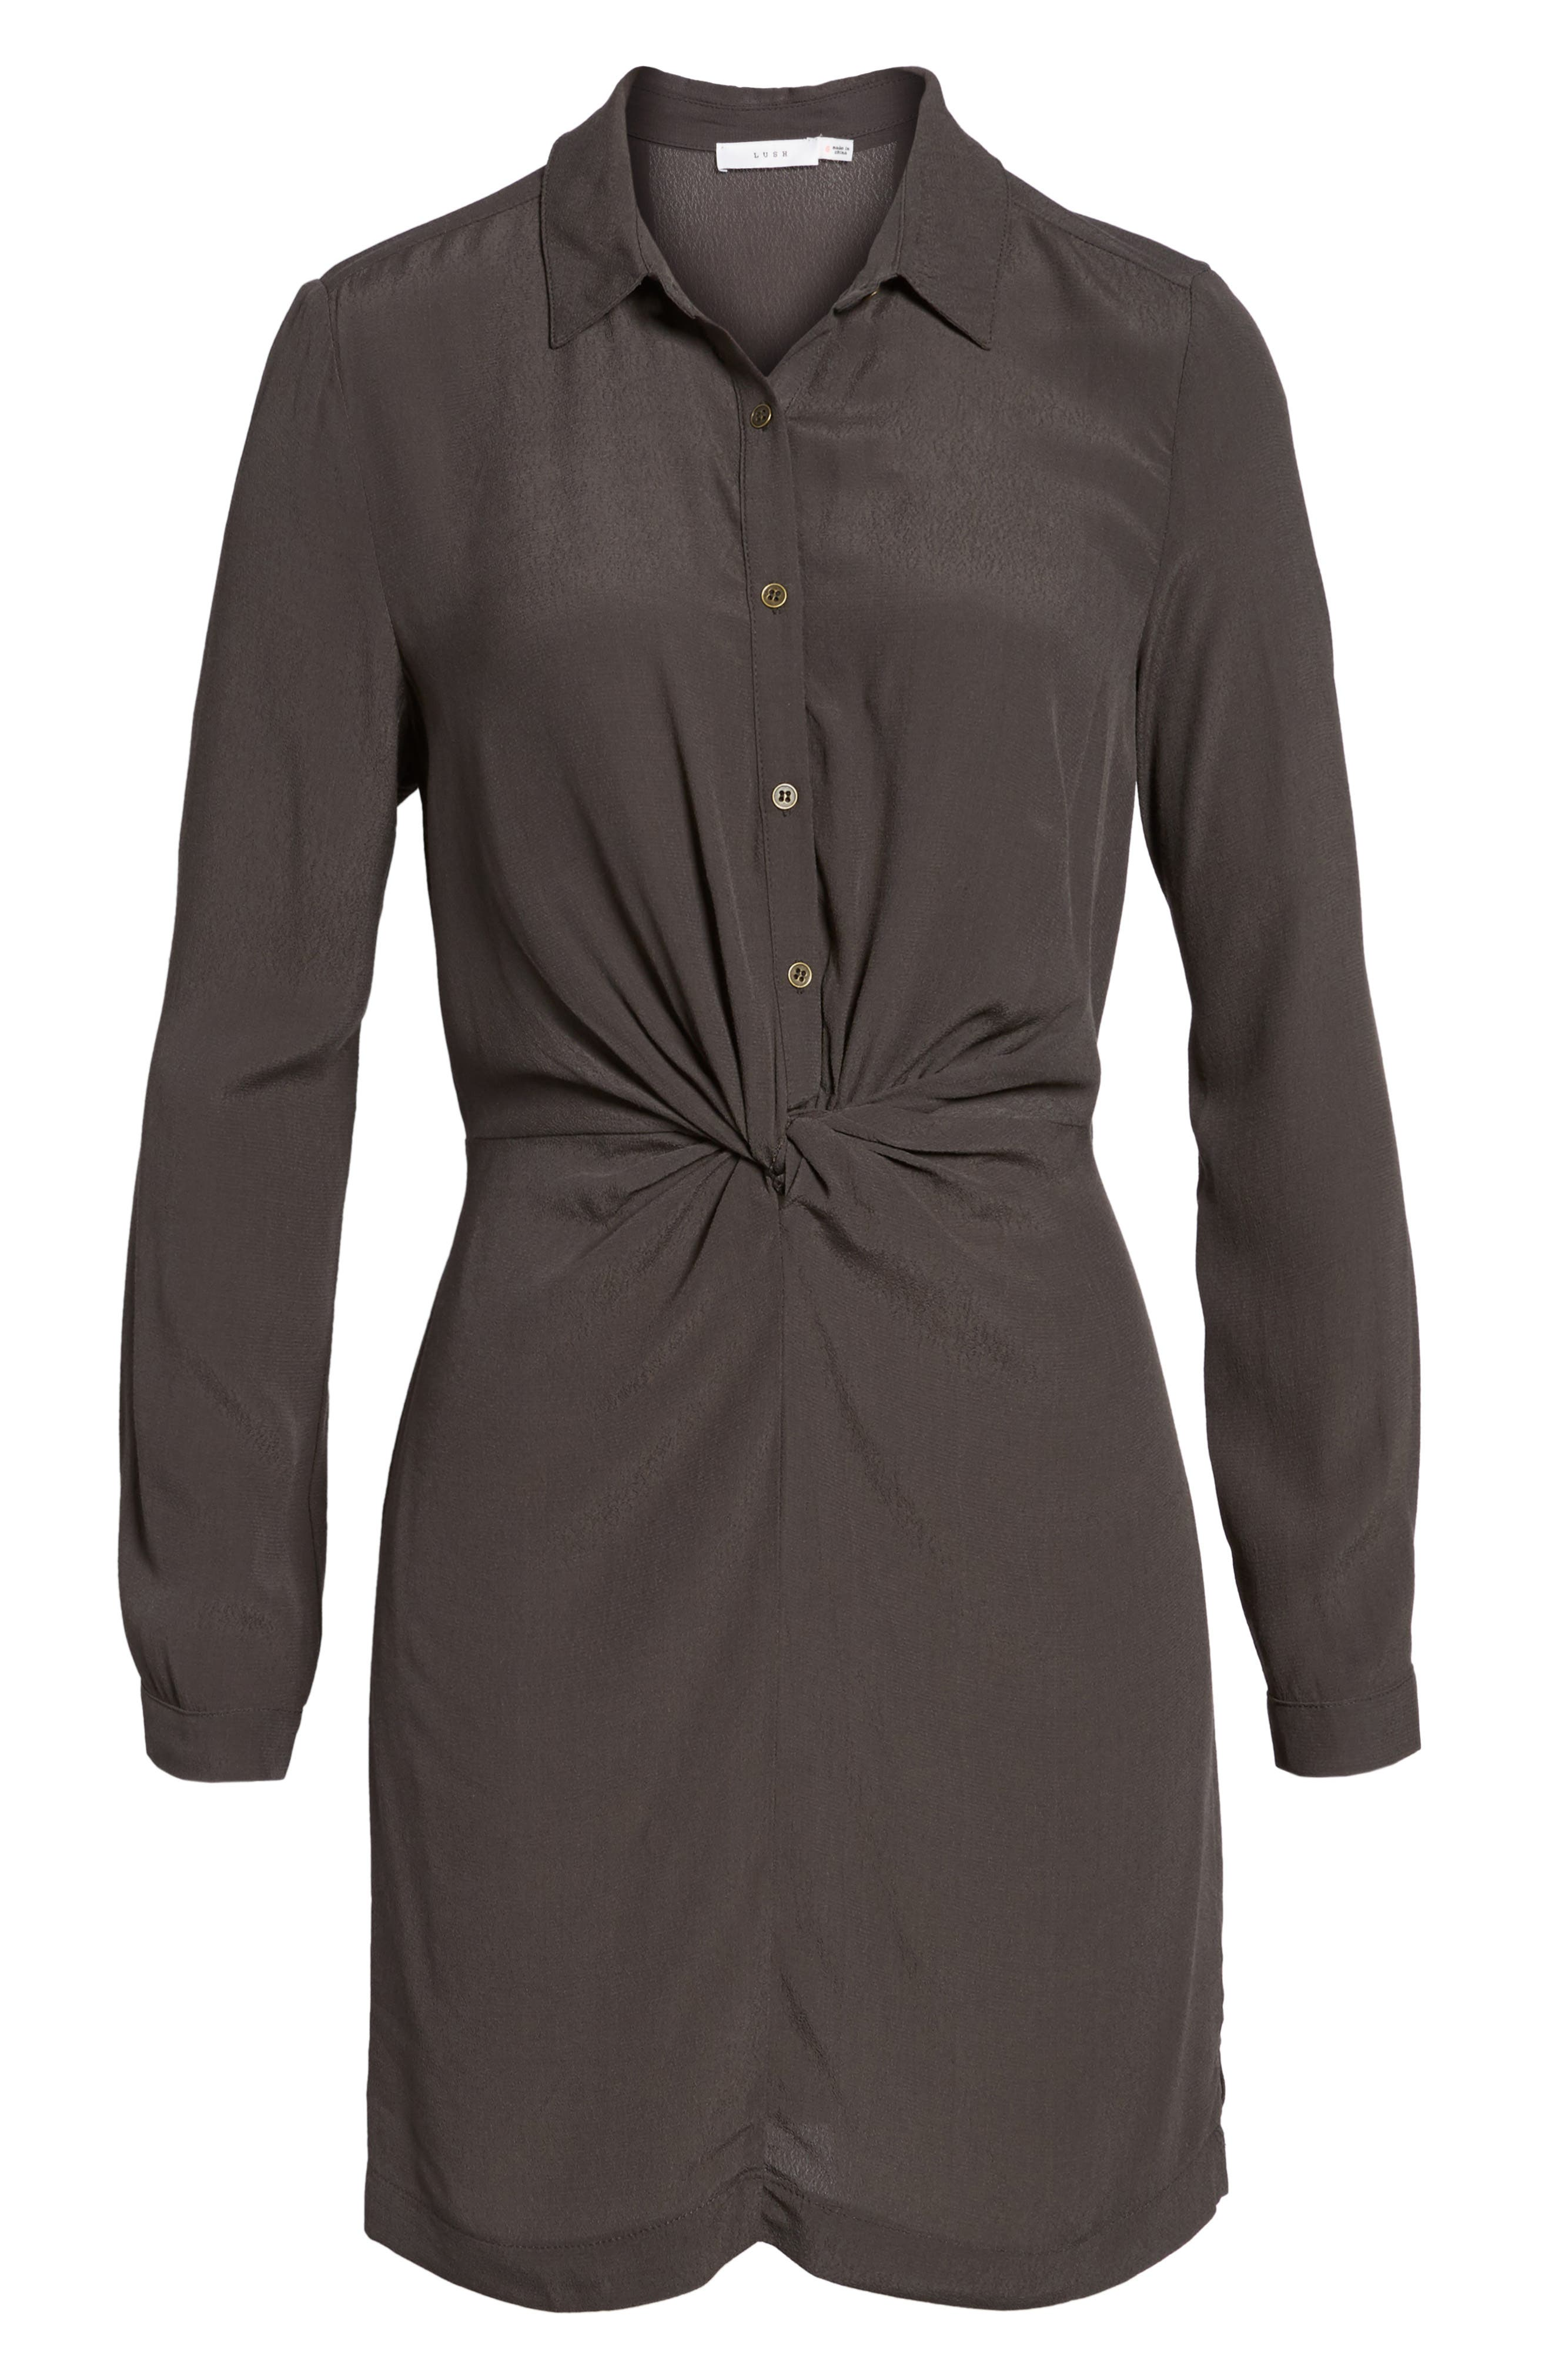 Twisted Shirtdress,                             Alternate thumbnail 5, color,                             022